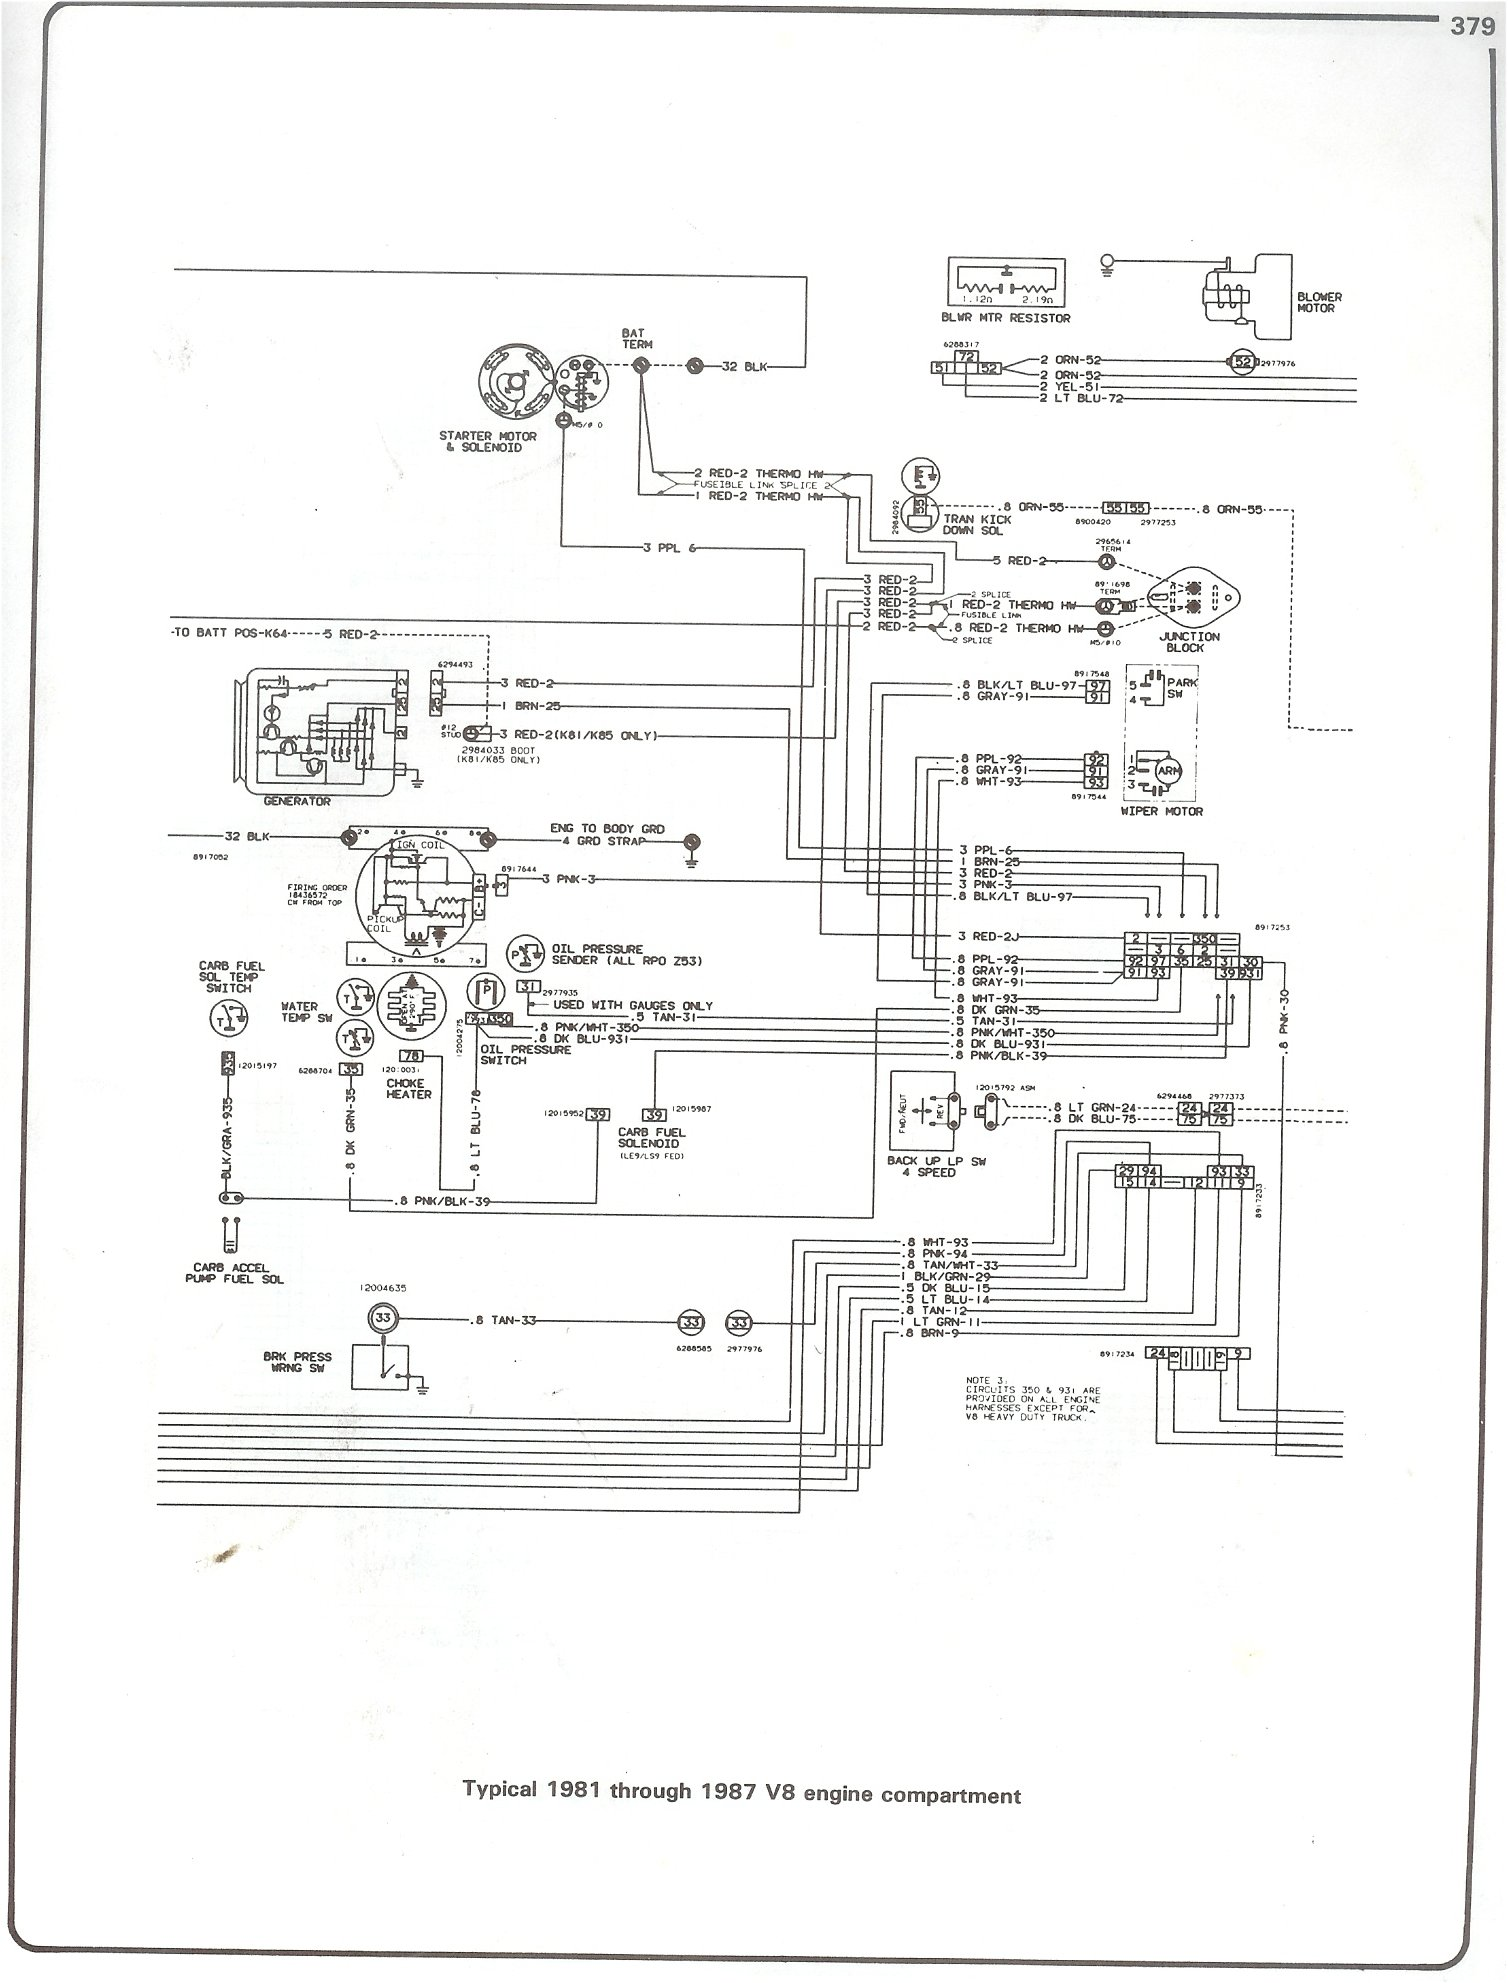 81 87_V8_engine complete 73 87 wiring diagrams c10 wiring diagram at edmiracle.co